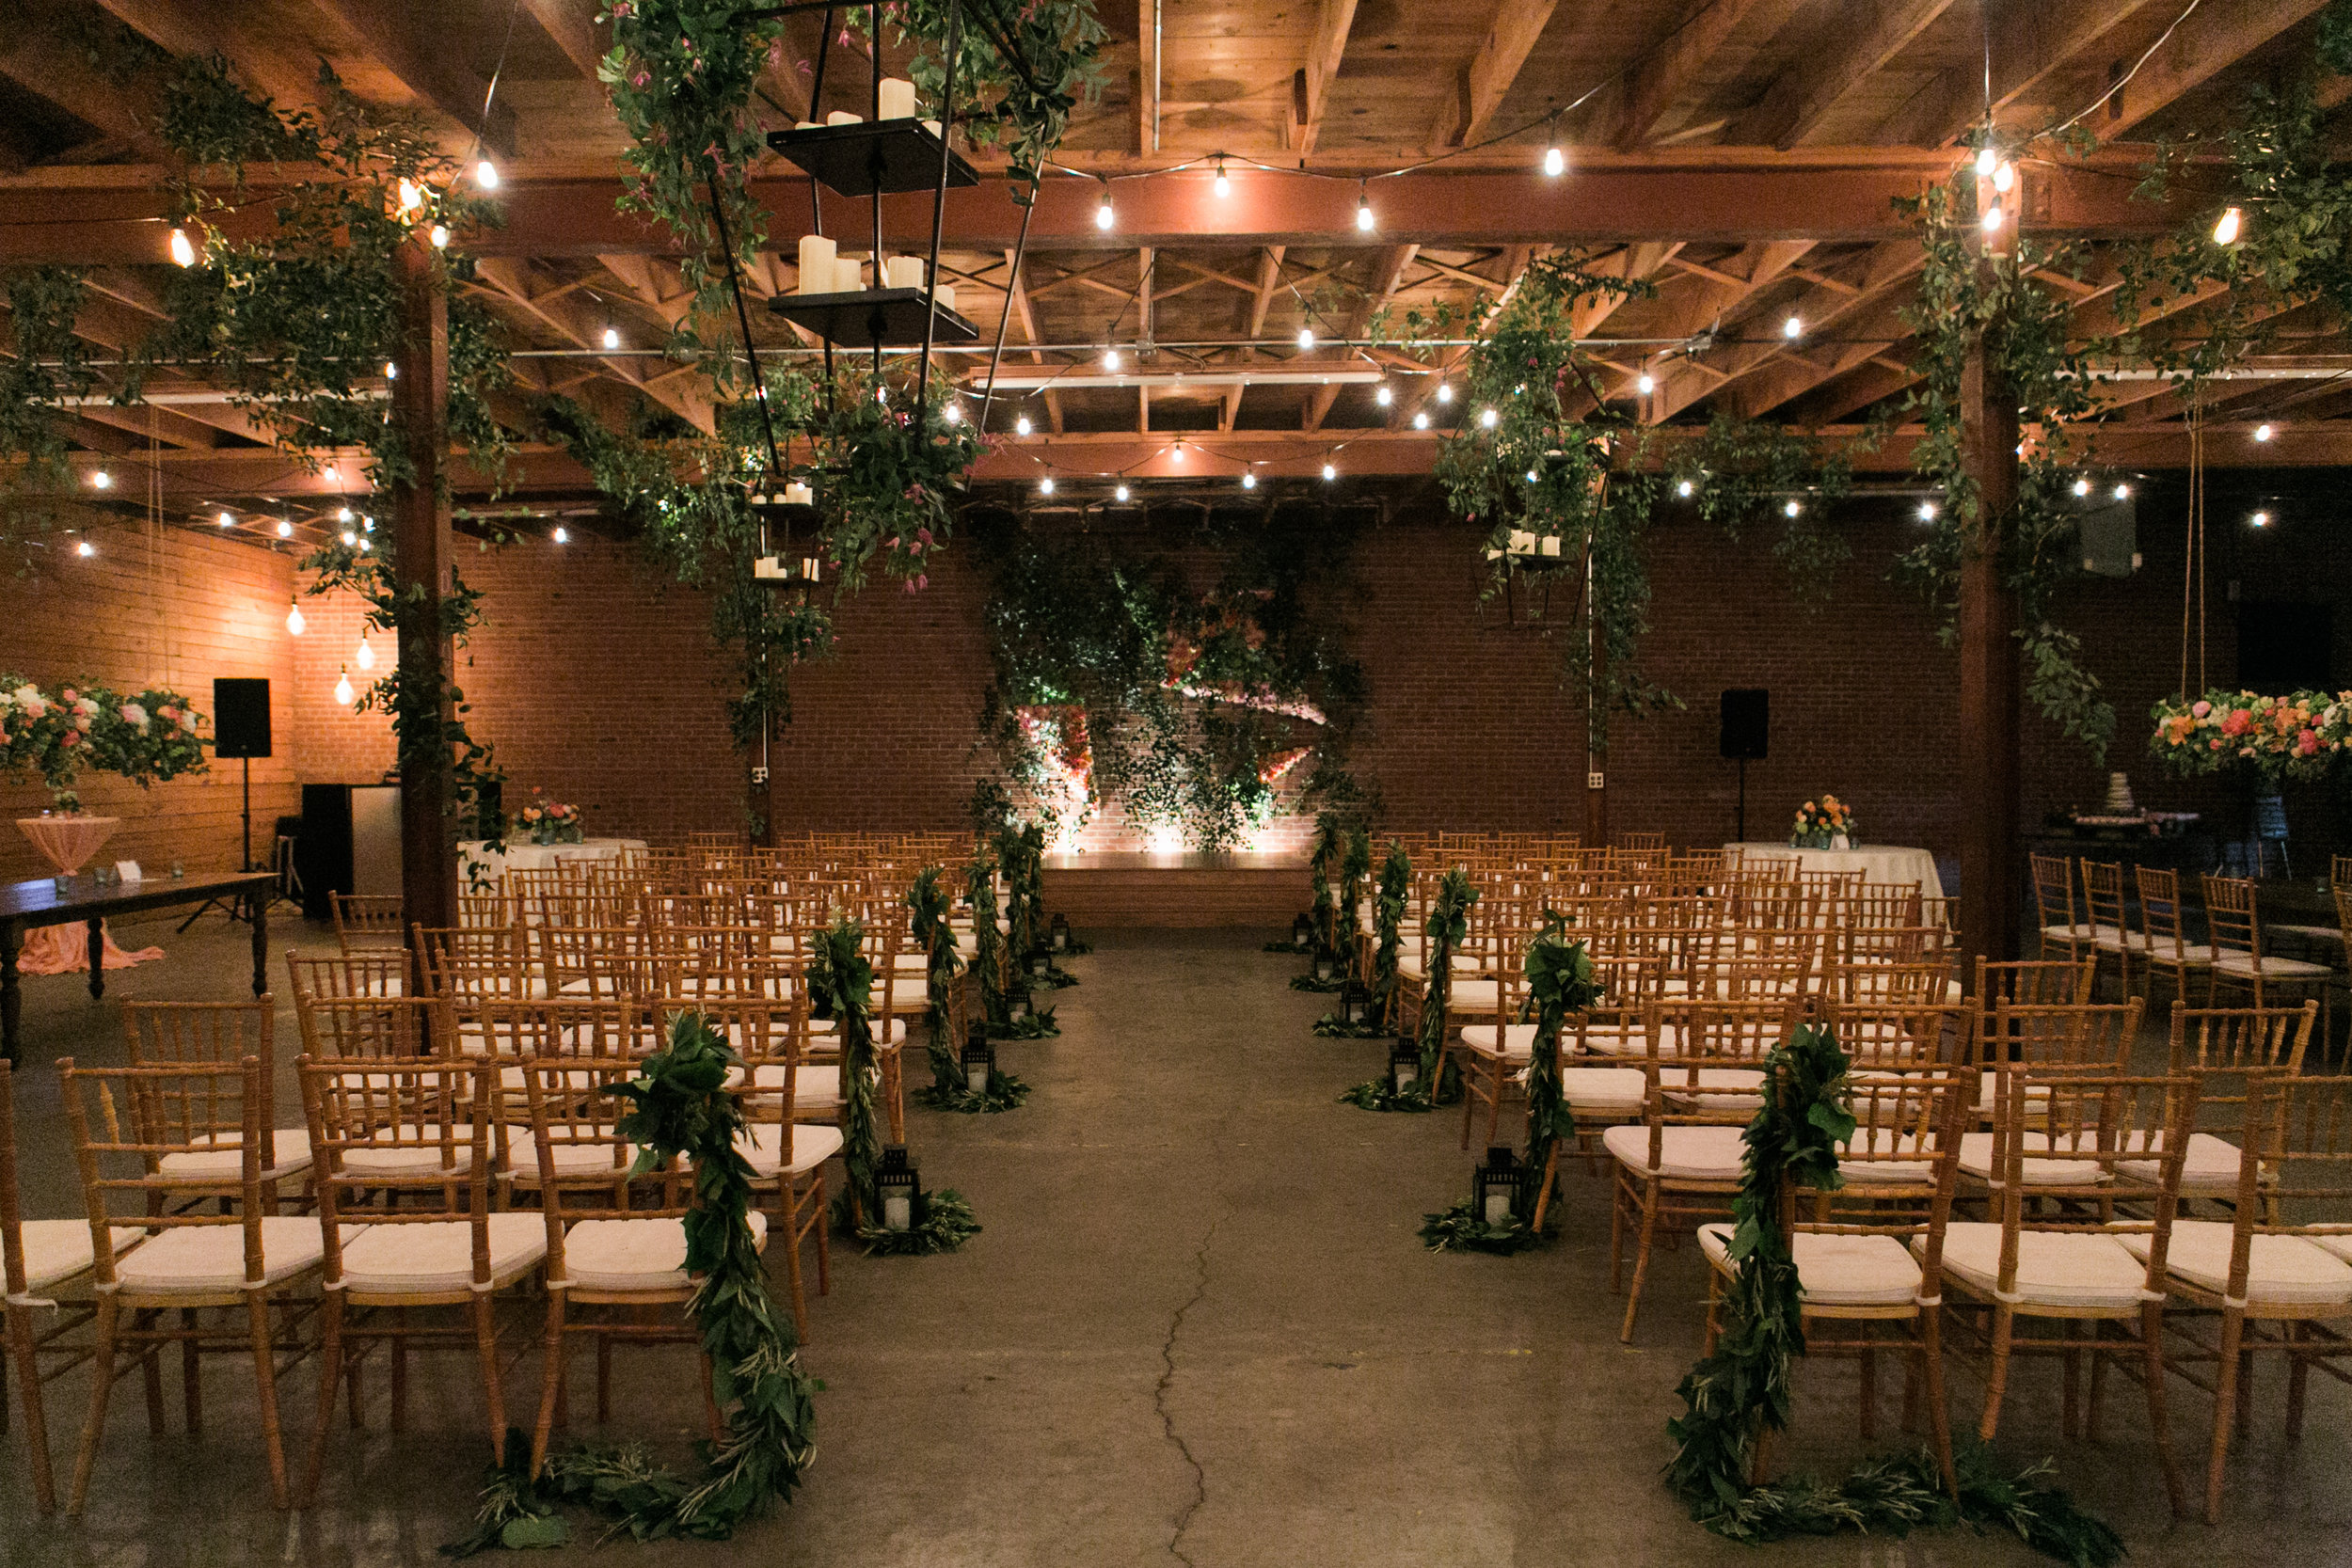 The Bowery Warehouse Amarillo's wedding event and venue. Parie designs wedding coordination and design